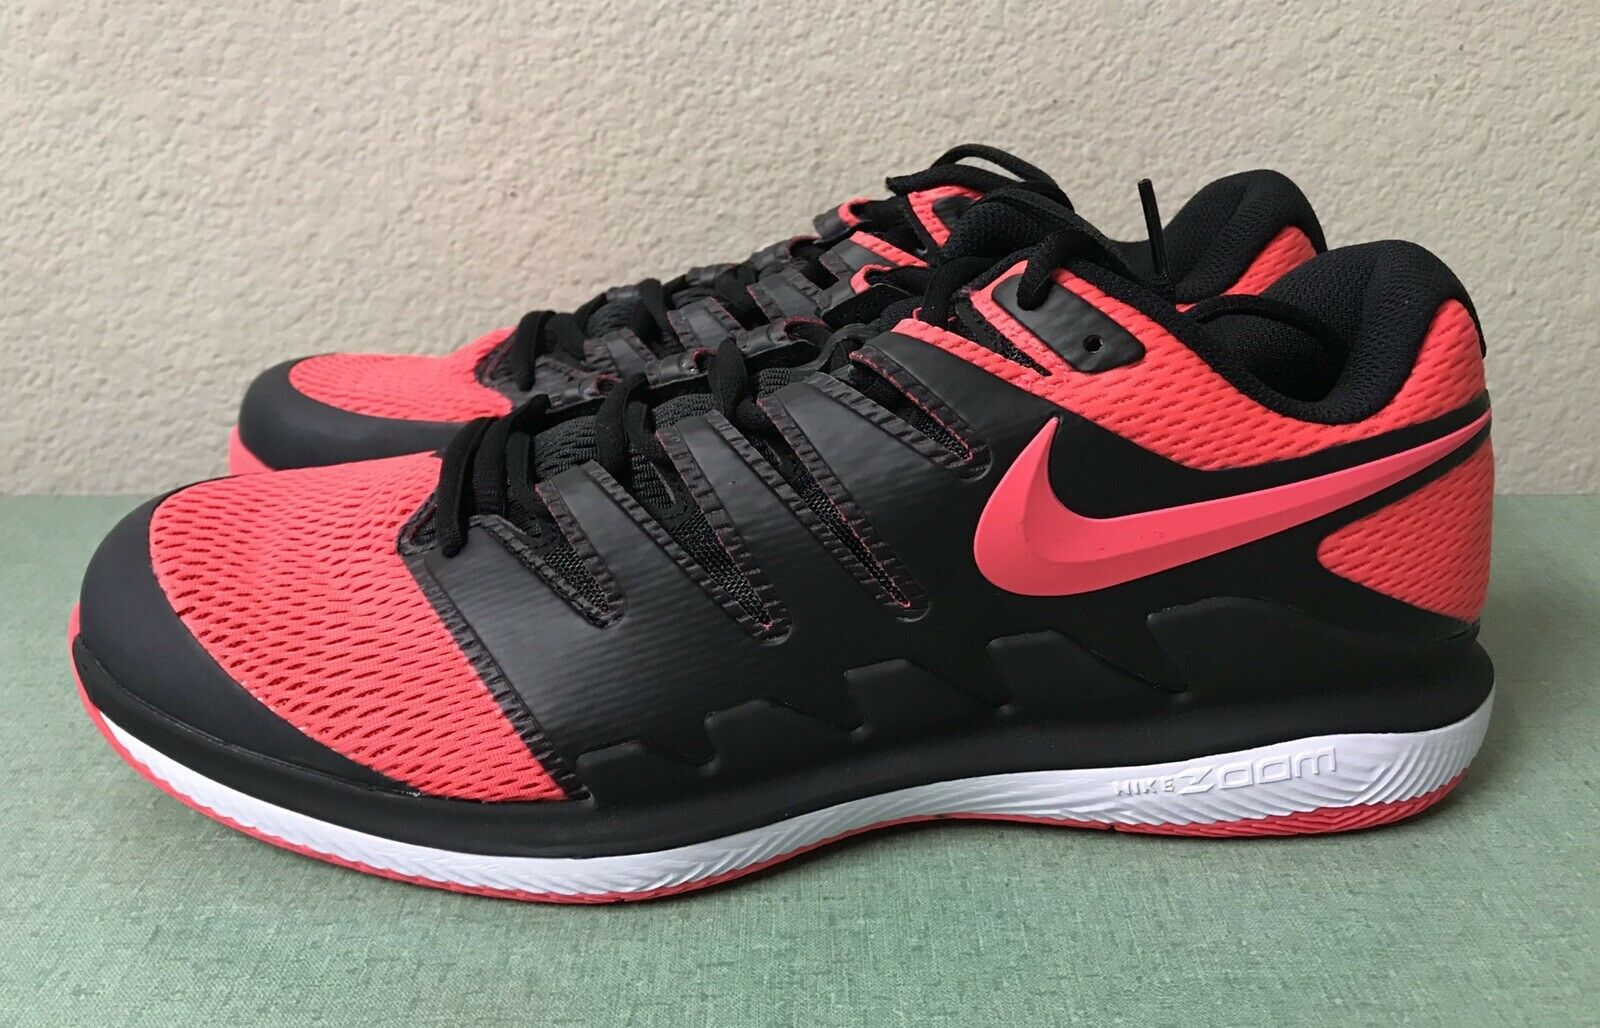 Nike Air Zoom Vapor X HC Black Solar Red Tennis shoes Mens Sz 12.5 Federer Nadal